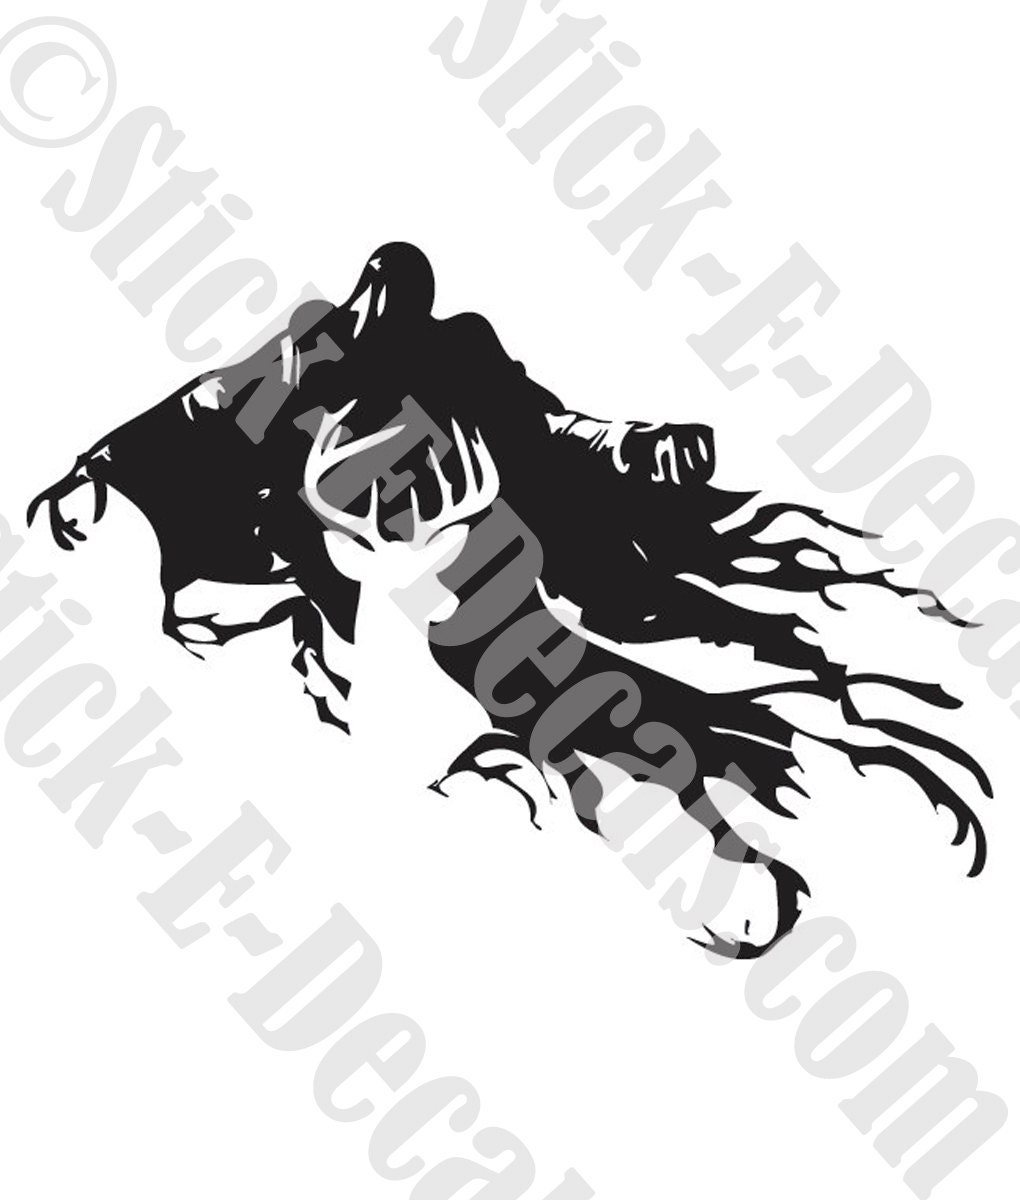 dementor coloring pages - dementor and stag patronus or choose your own patronus